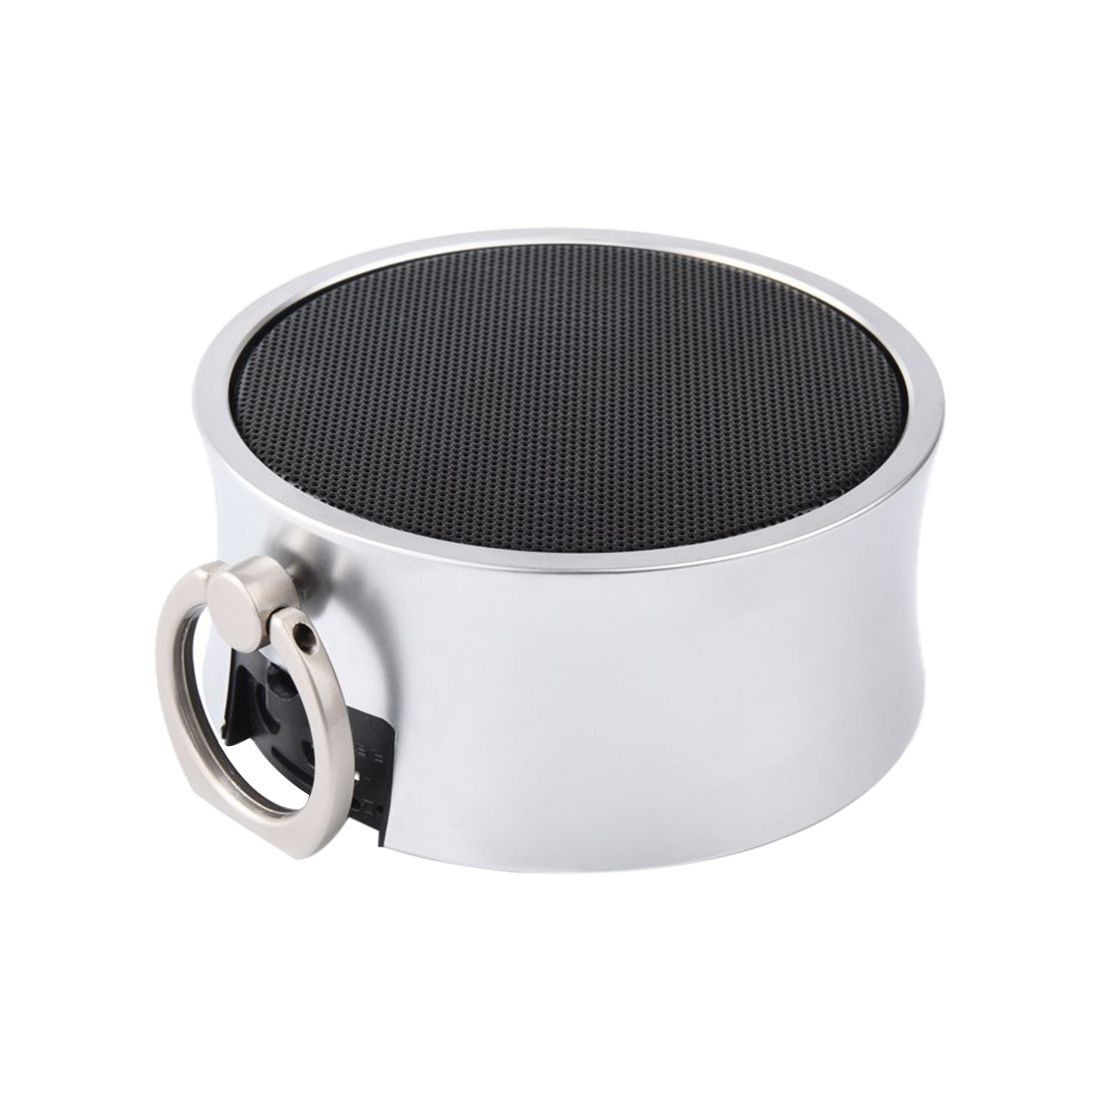 Portable Bluetooth Speakers Wireless Stereo Super Bass Portable Bluetooth MP3 Speakers With Handsfree Speakerphone And 3.5mm